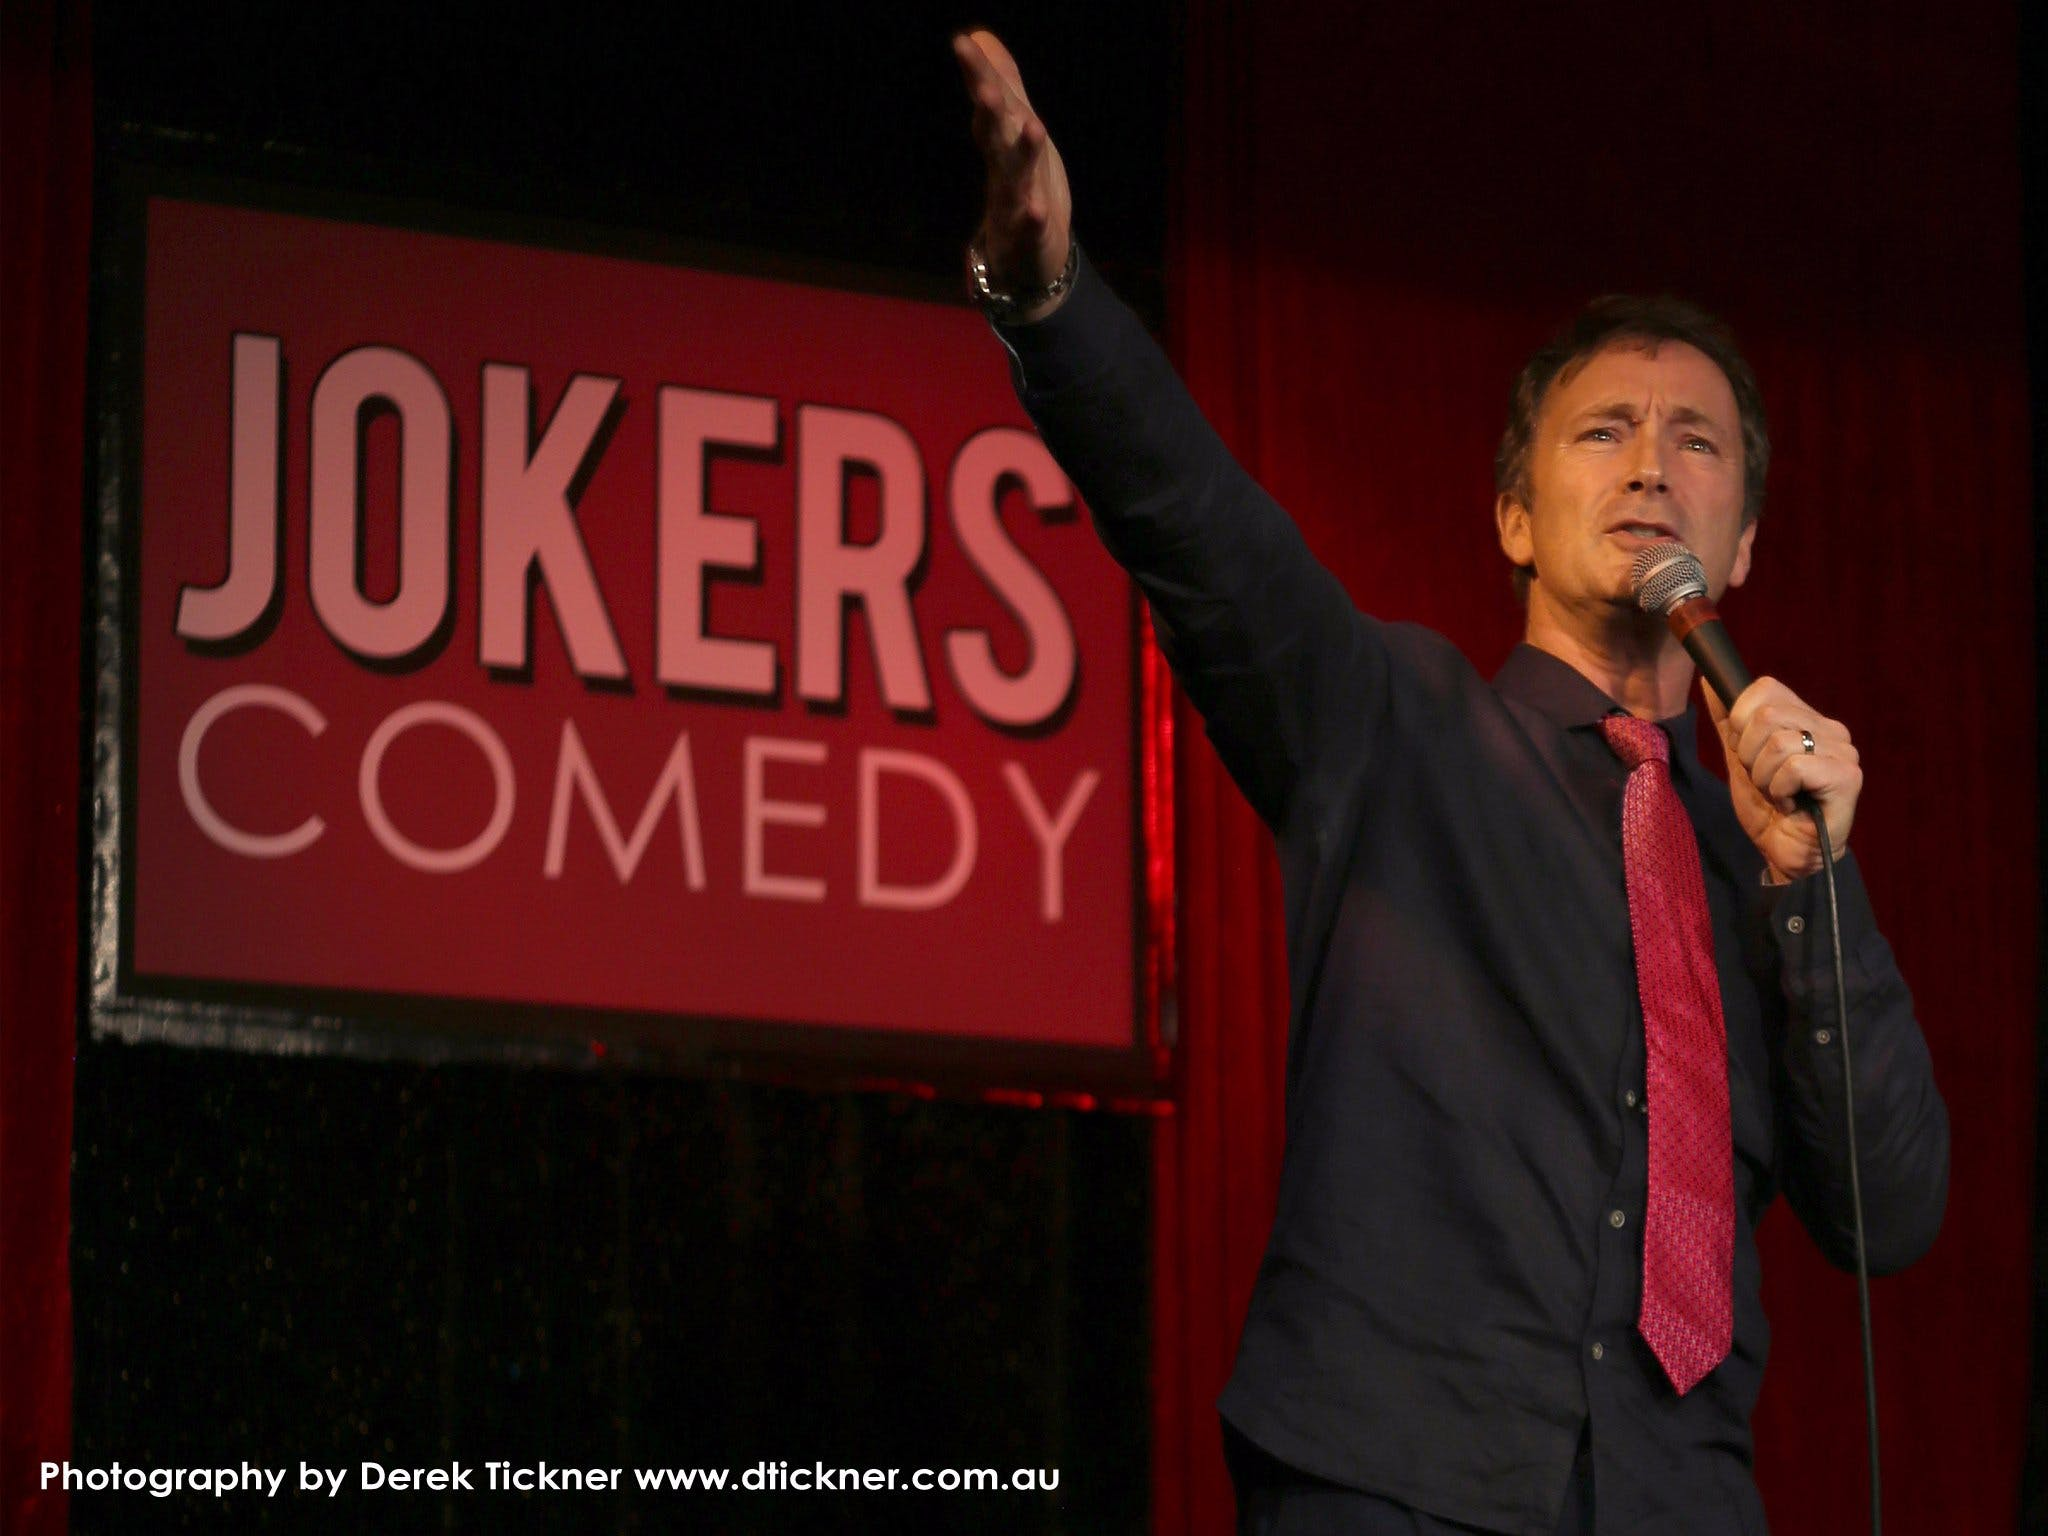 Jokers Comedy Club - ACT Tourism